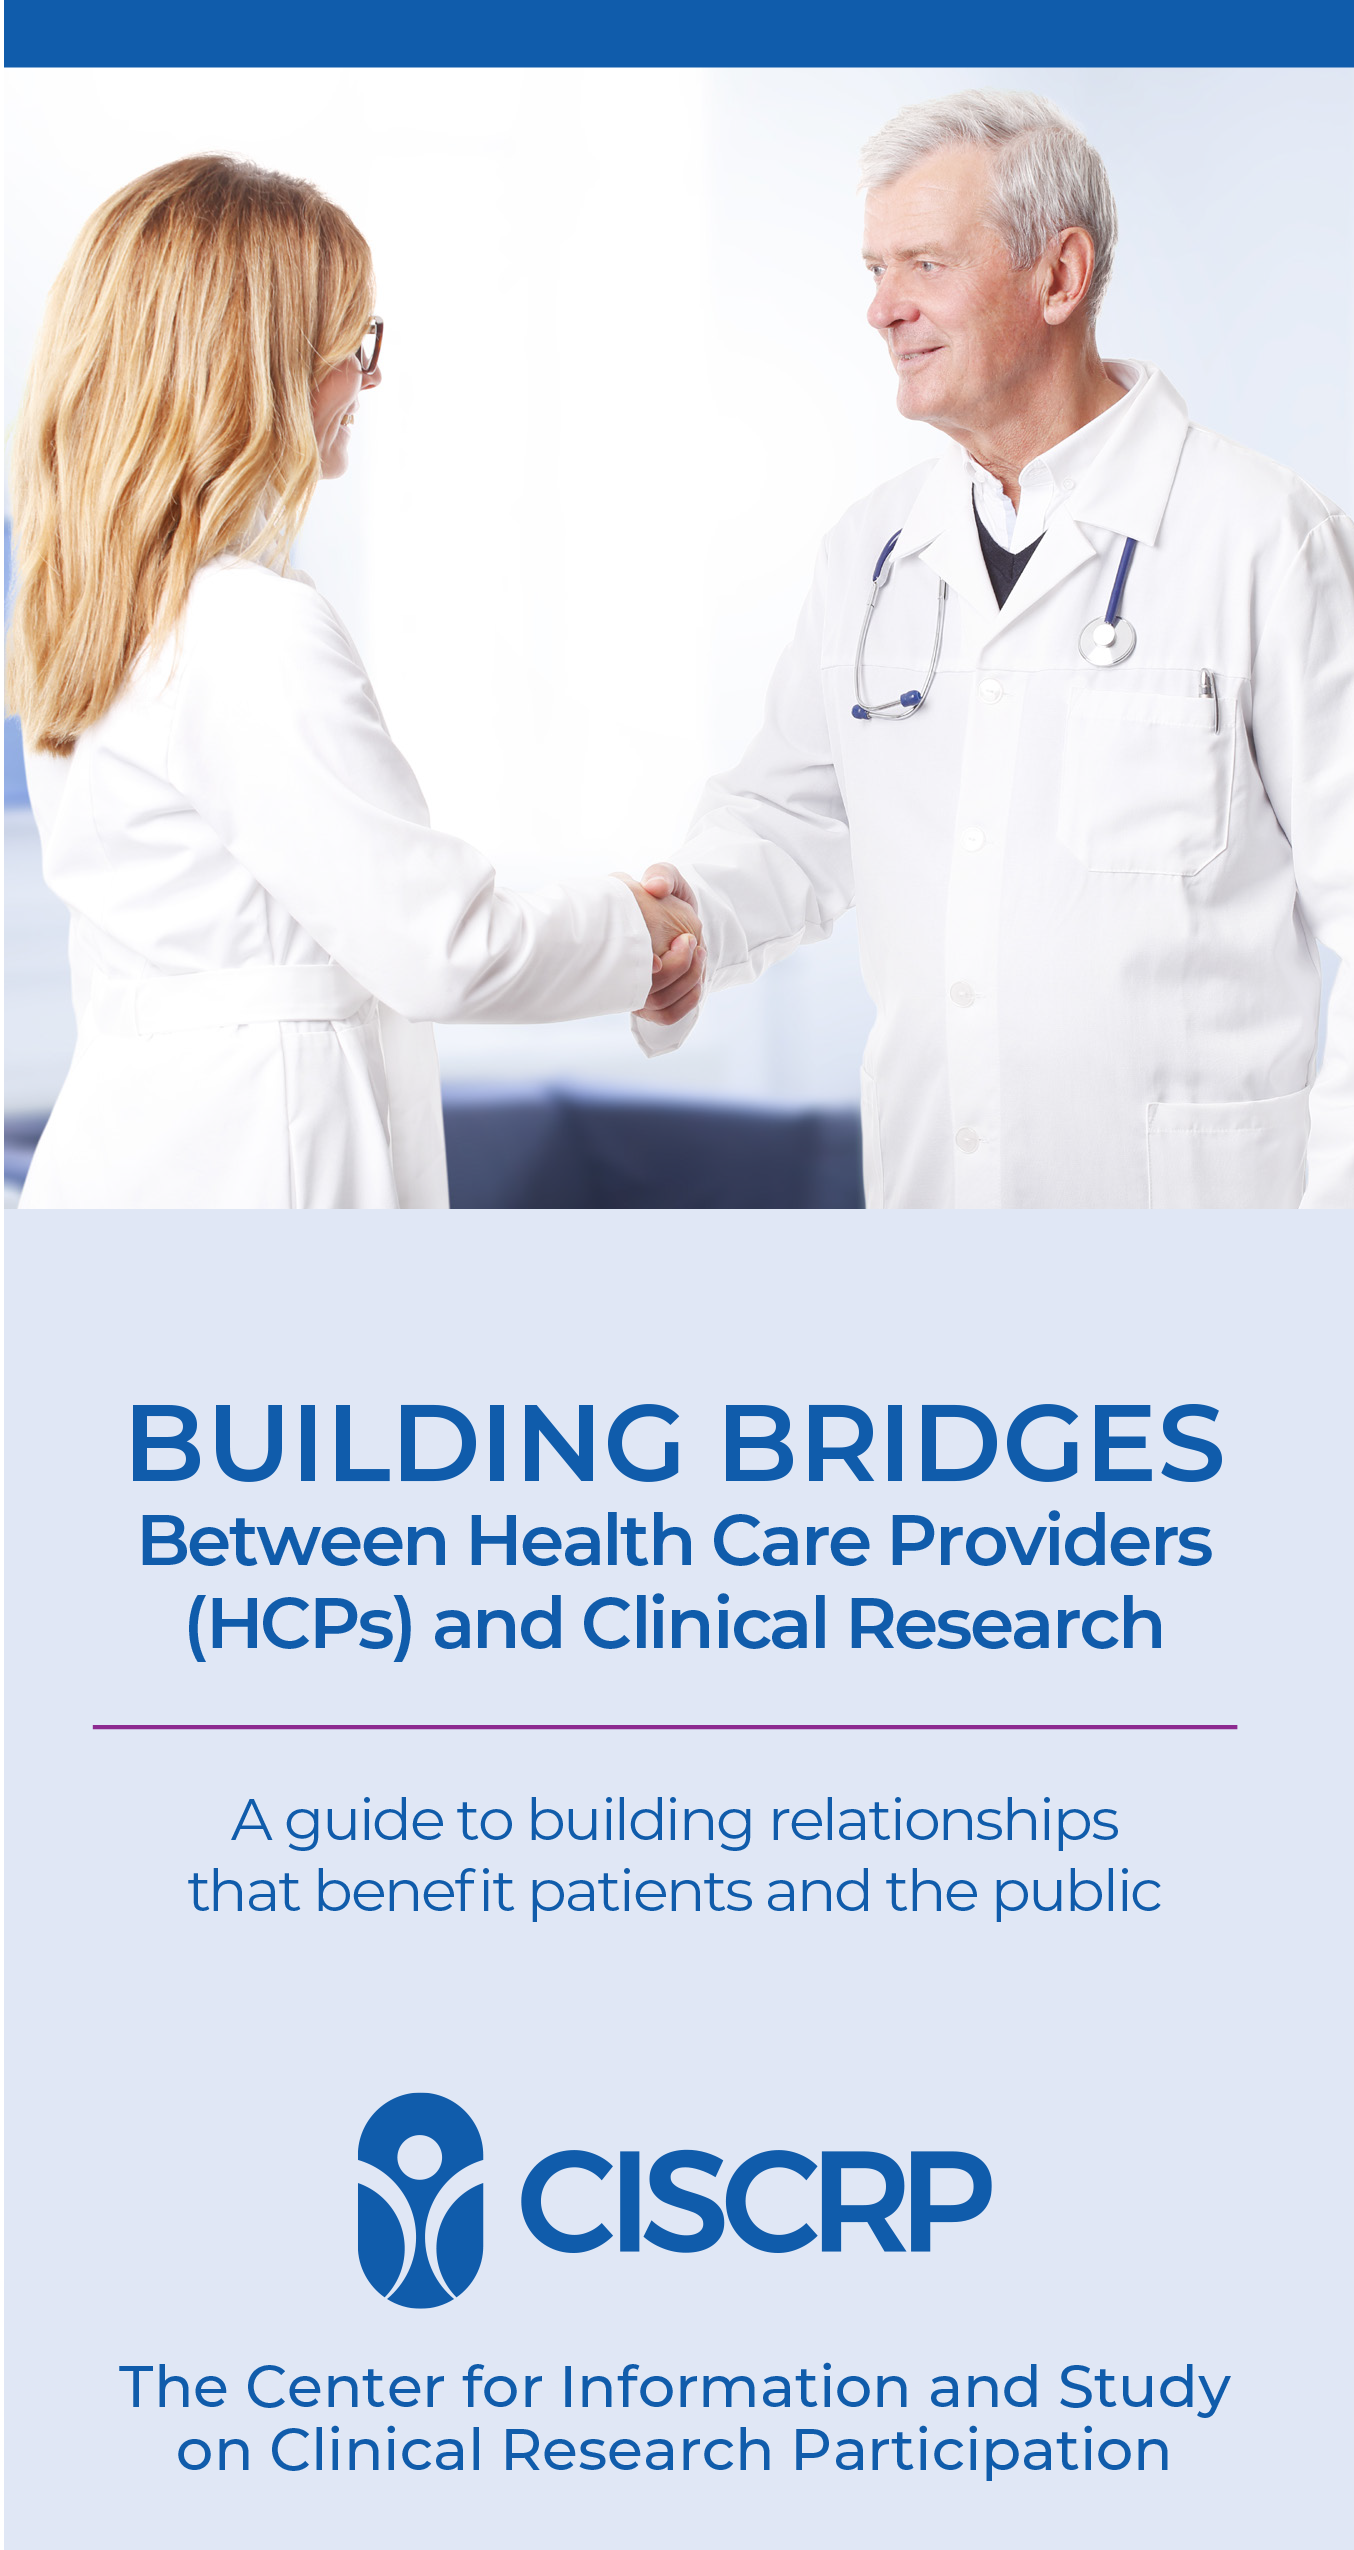 Building Bridges Between Health Care Providers (HCPs) and Clinical Research